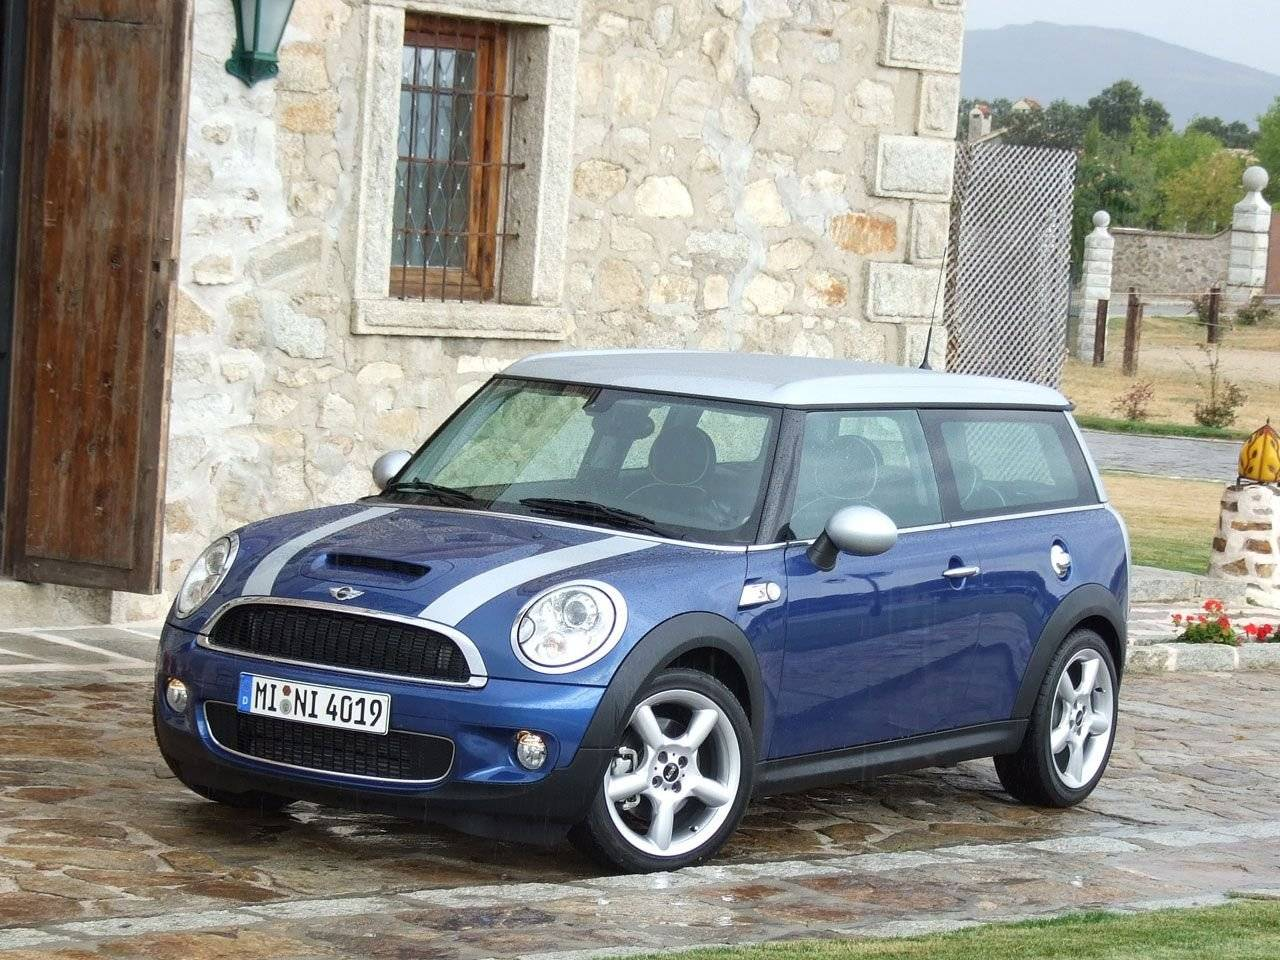 mini clubman test mini cooper clubman pictures posters. Black Bedroom Furniture Sets. Home Design Ideas